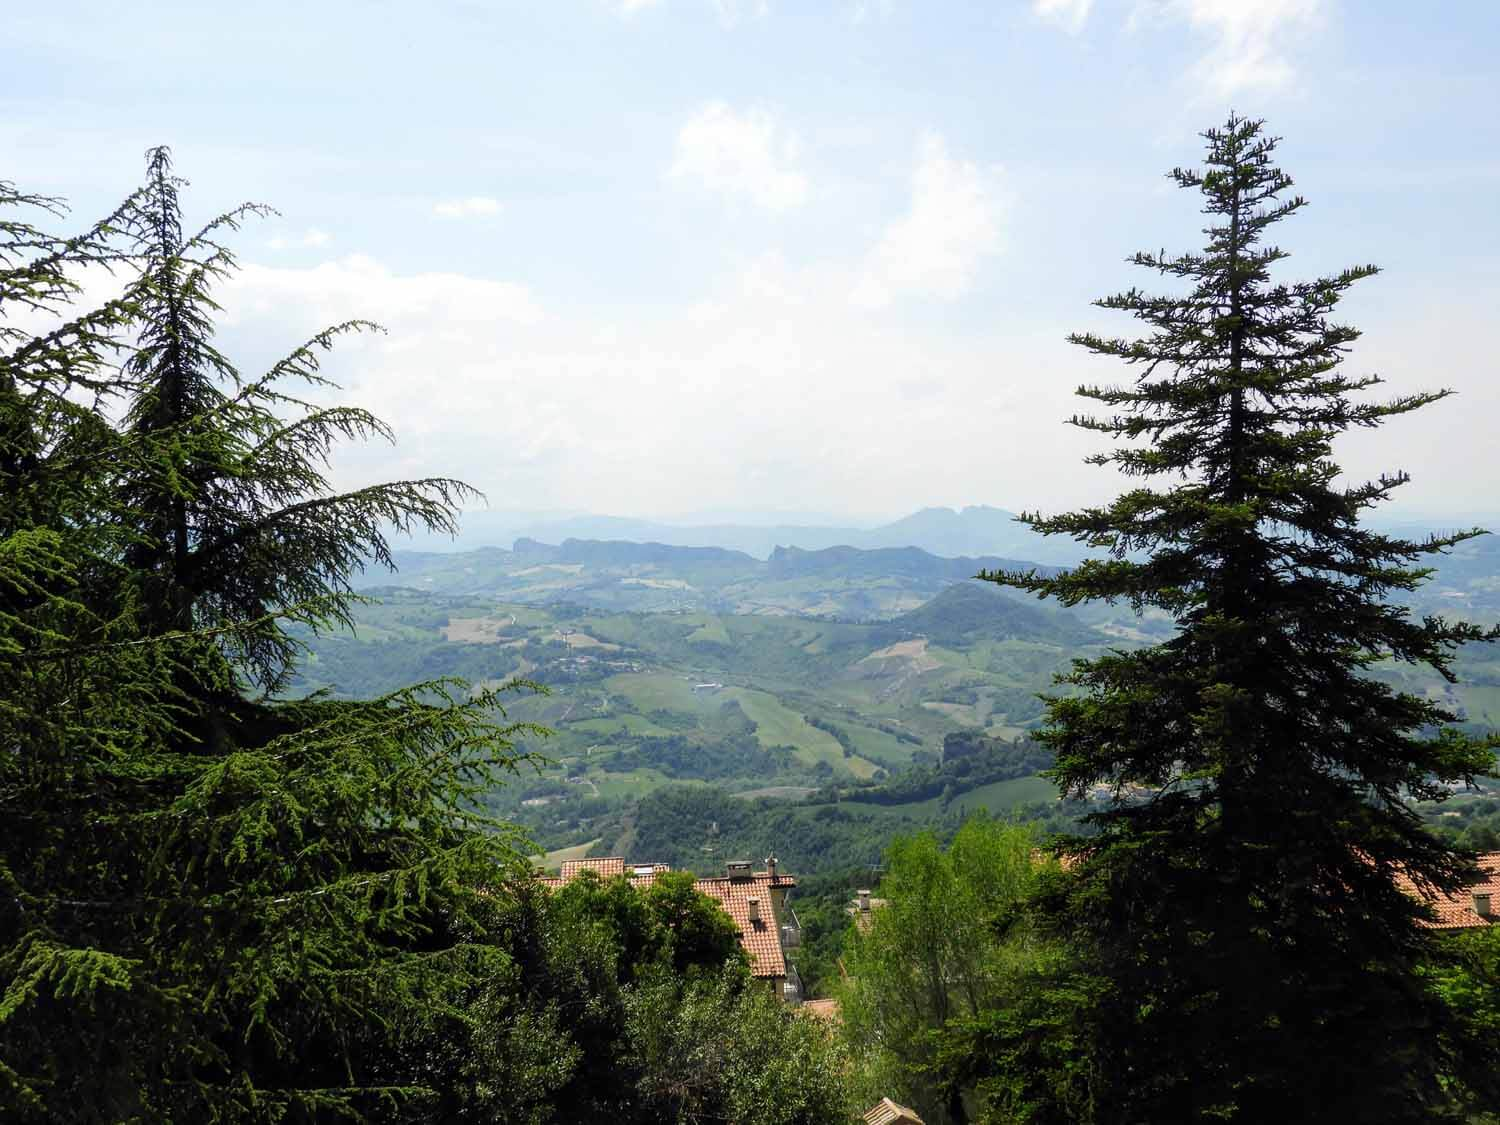 san-marino-micro-nation-mountain-top-view-cedar-italy.jpg